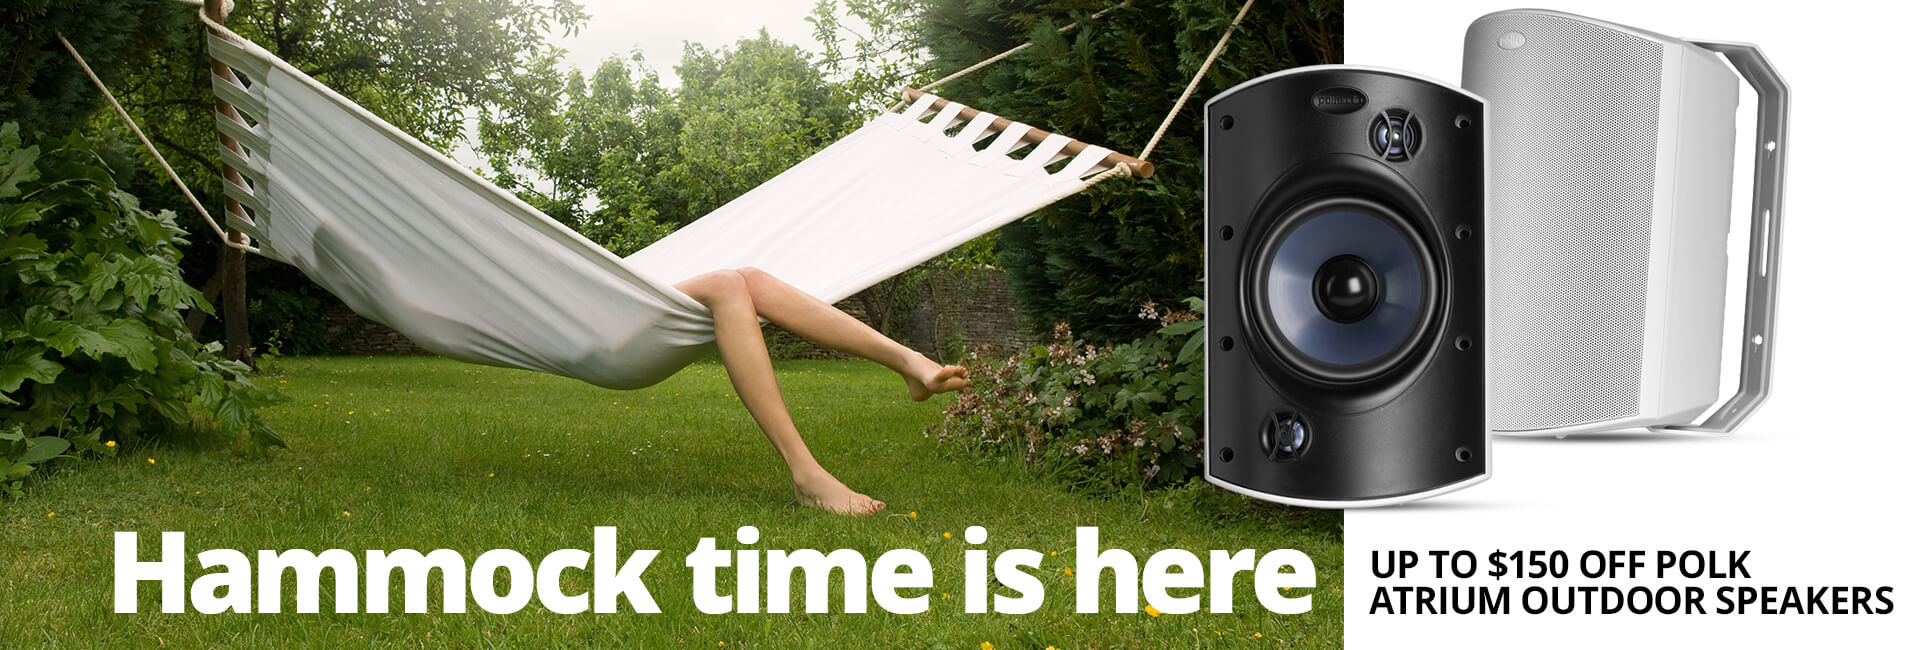 Save up to $150 on Polk Atrium outdoor speakersEnds 5/6